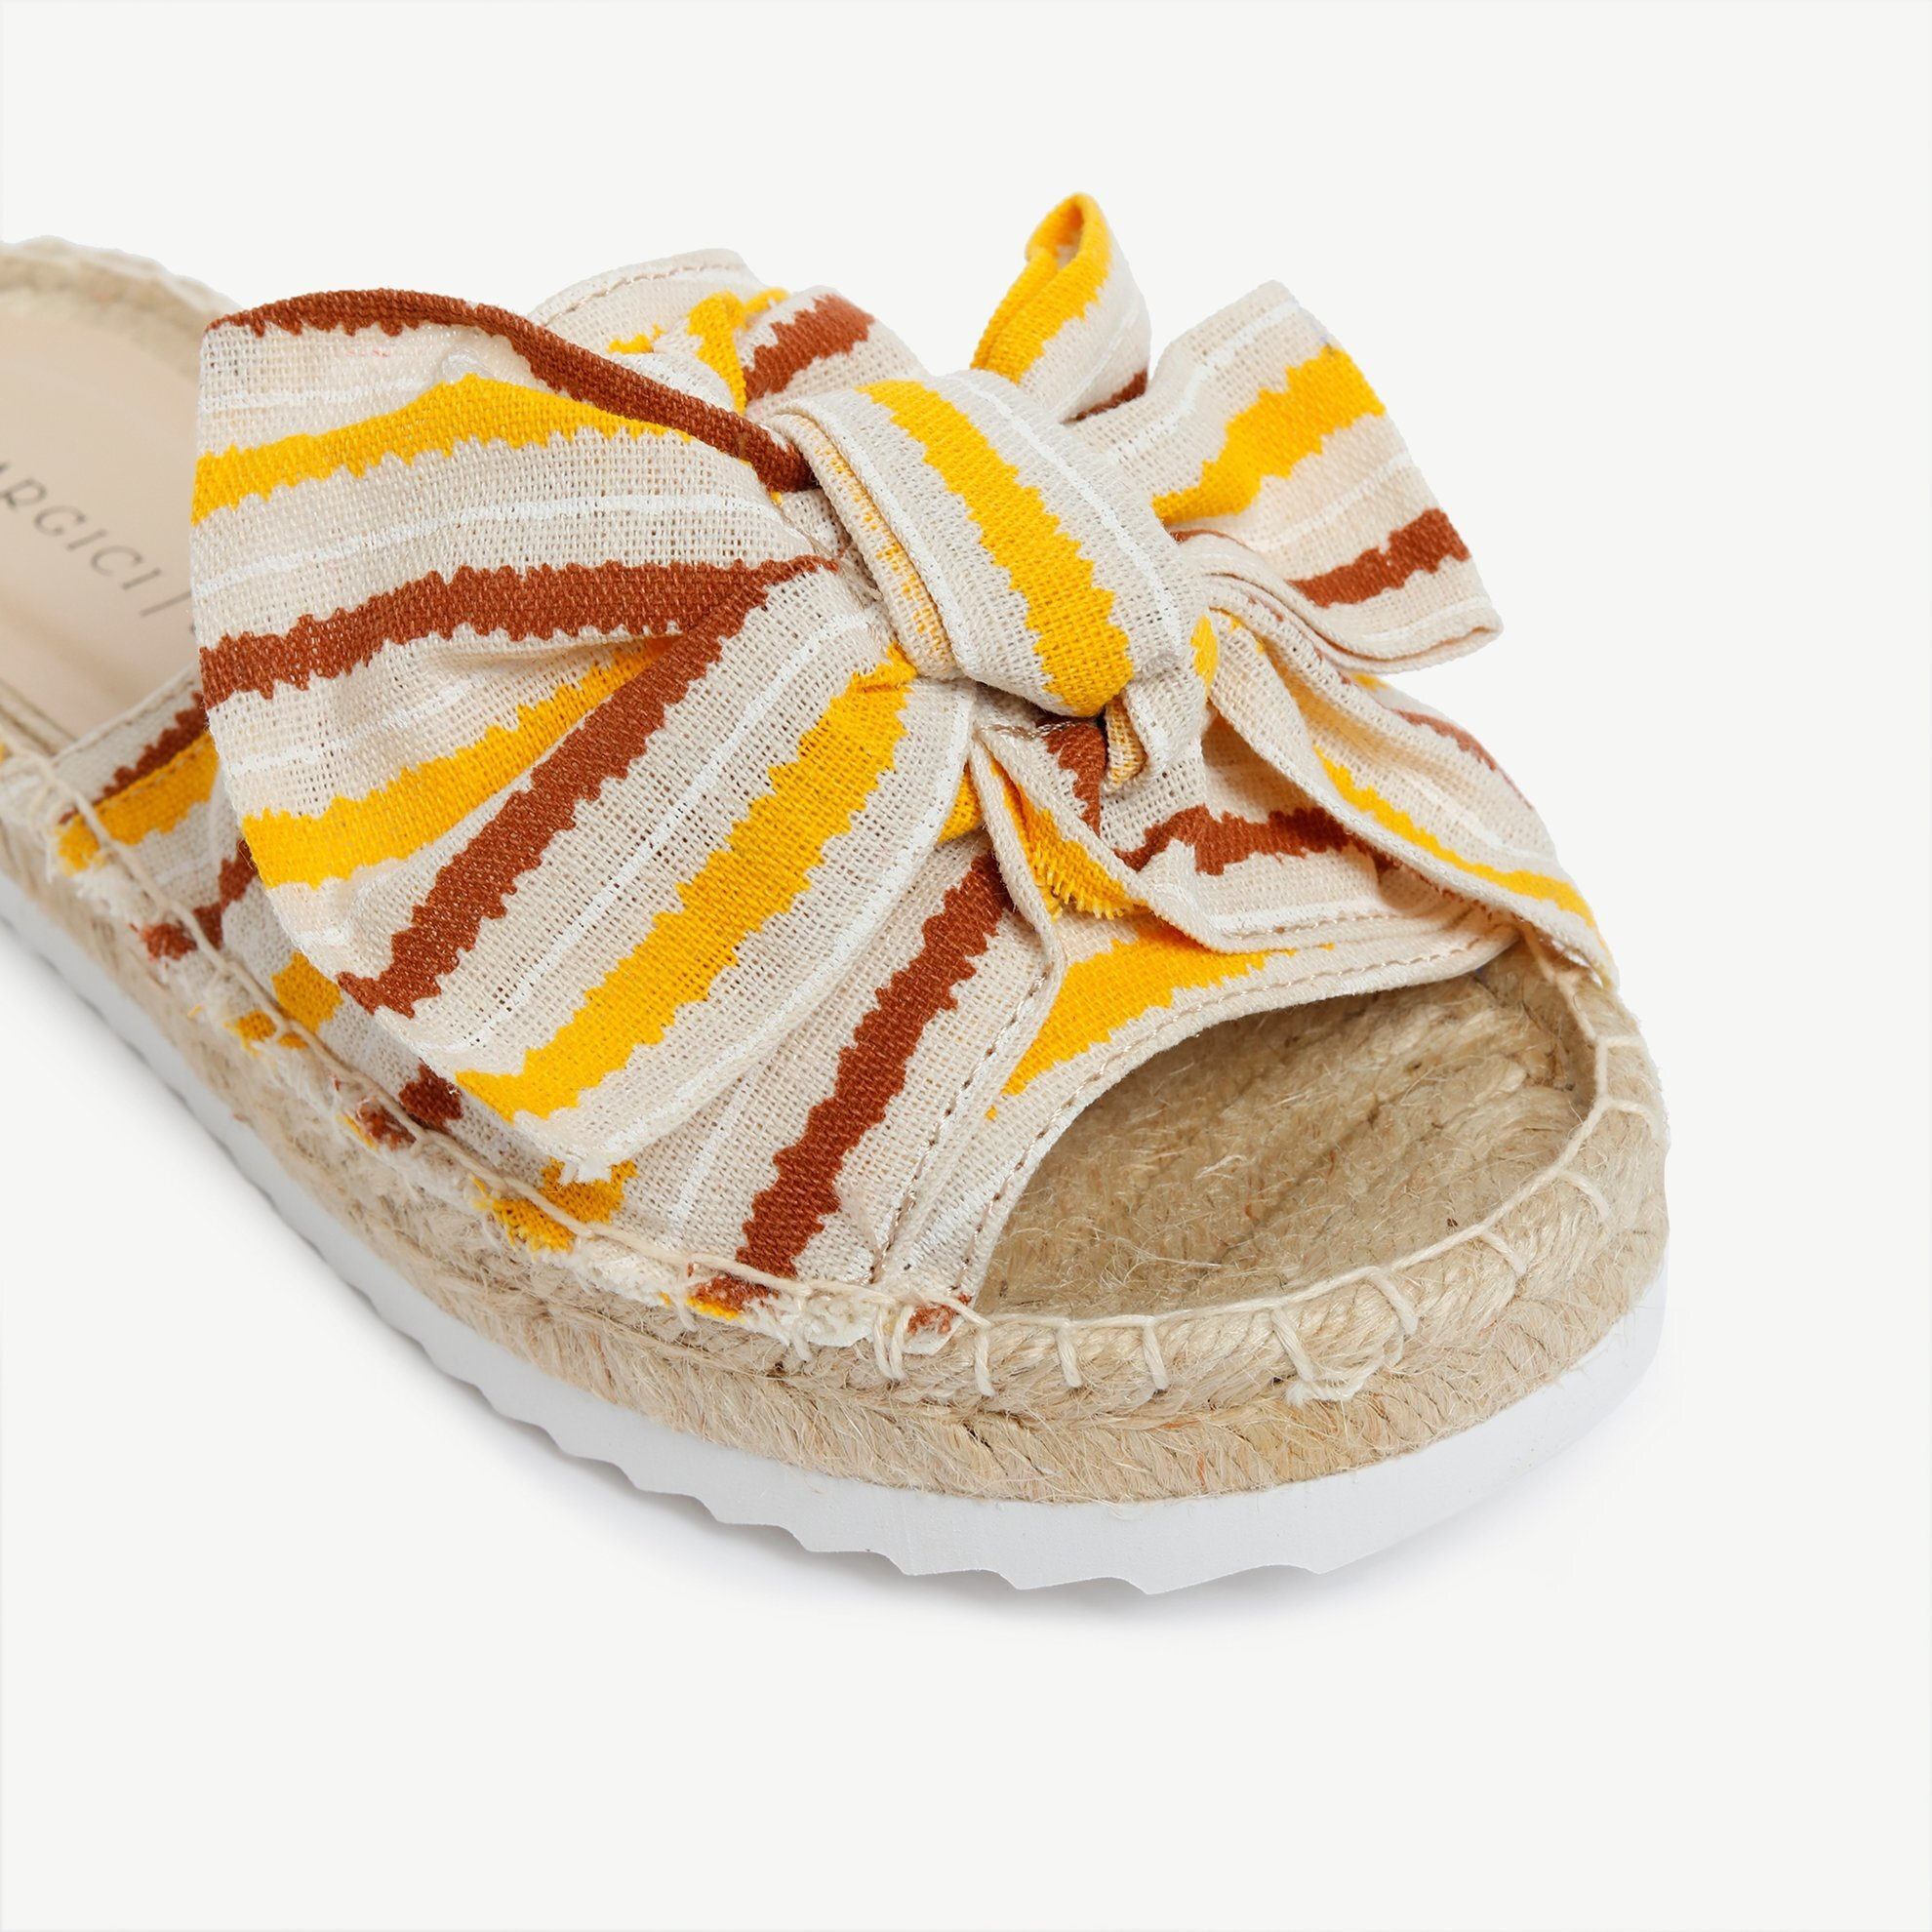 Fabric Slipper With Jute Outsole